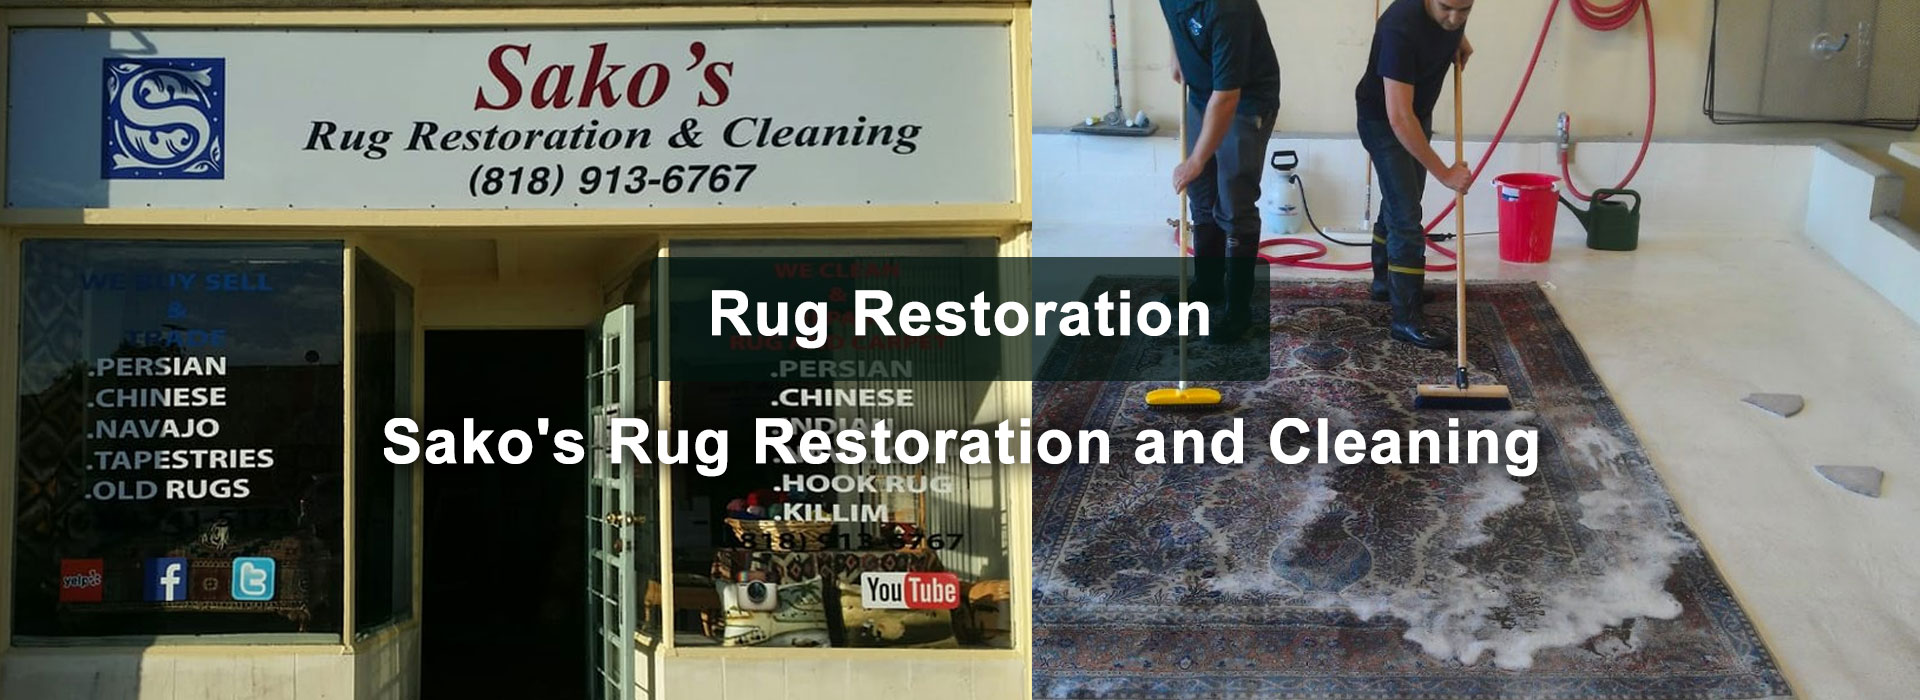 Sako's Rug Restoration & Cleaning